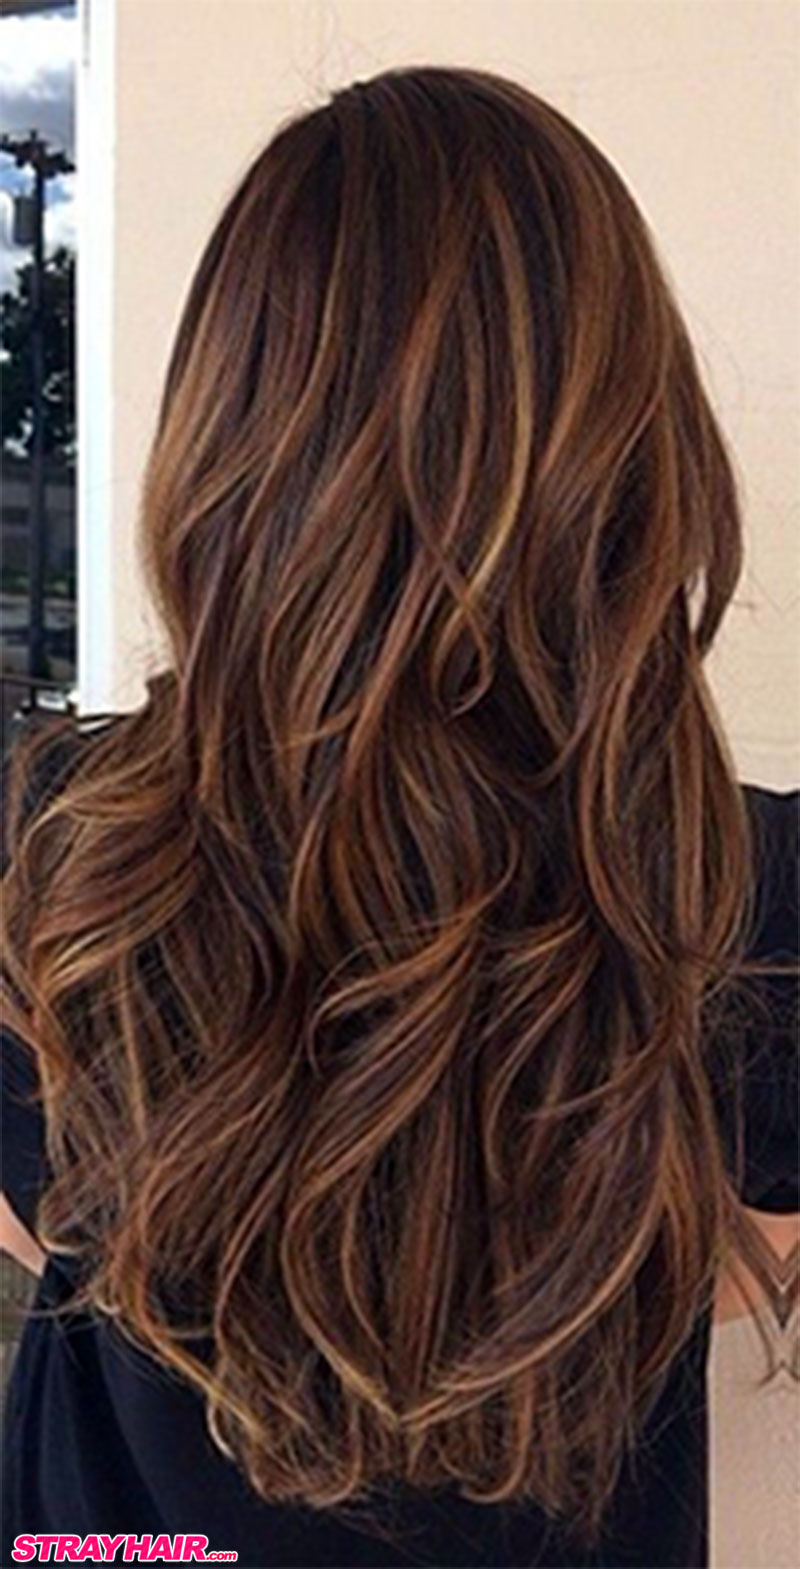 chocolate brown hair color with dimensional caramel highlights